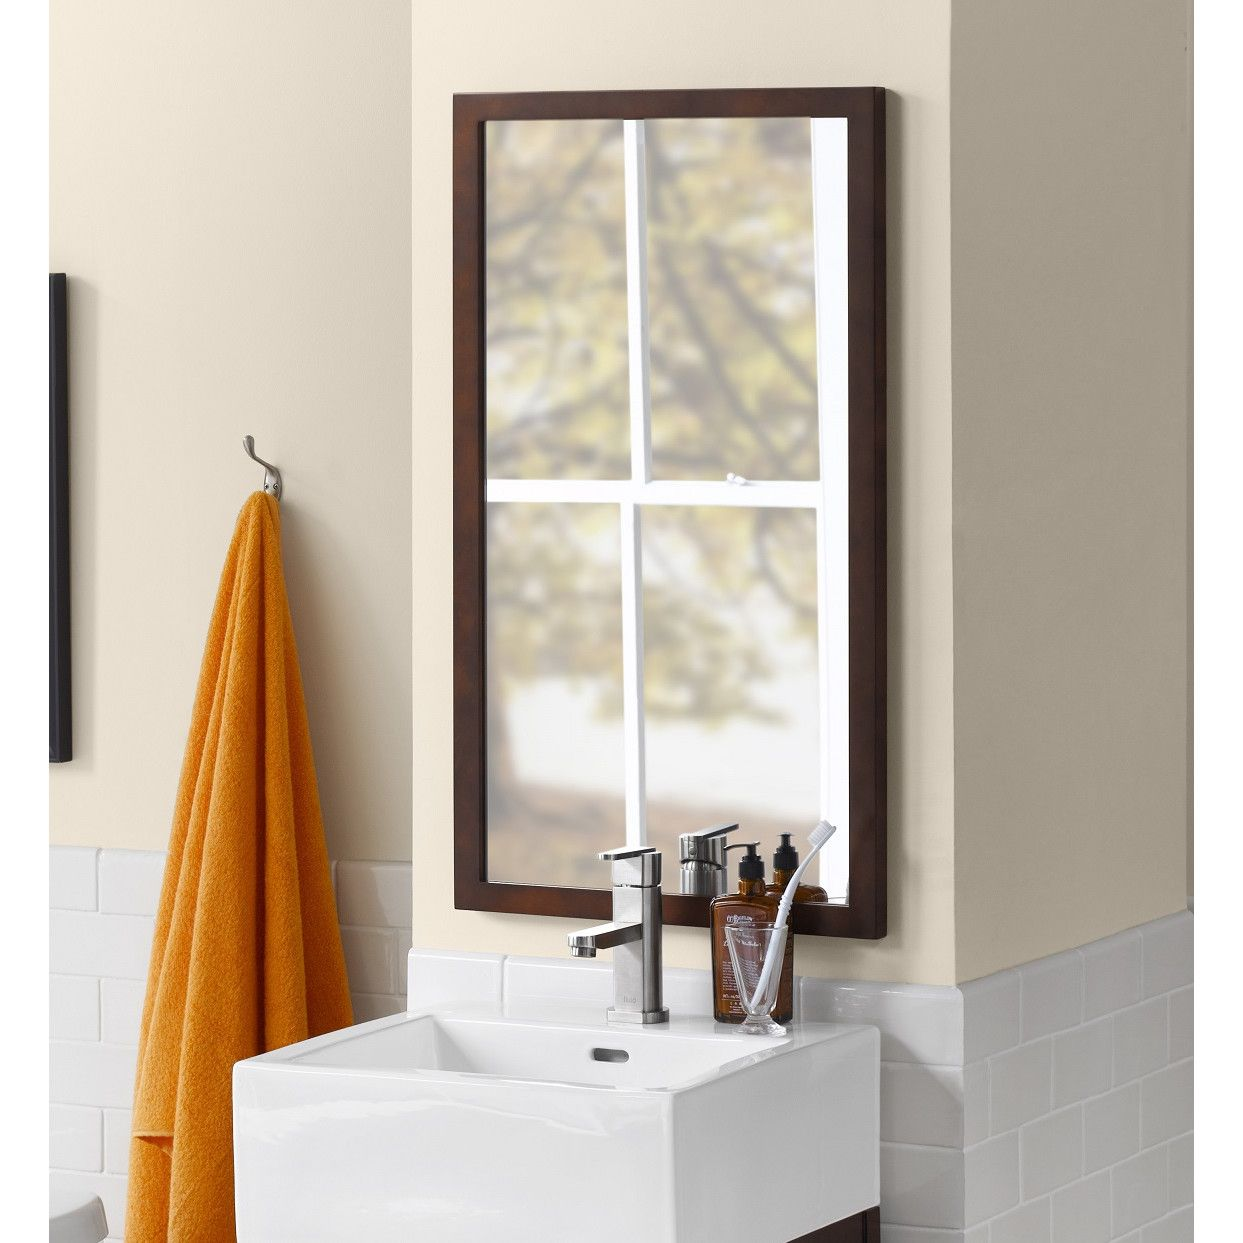 Alina Wall Mirror | Frame bathroom mirrors, Bathroom mirrors and ...